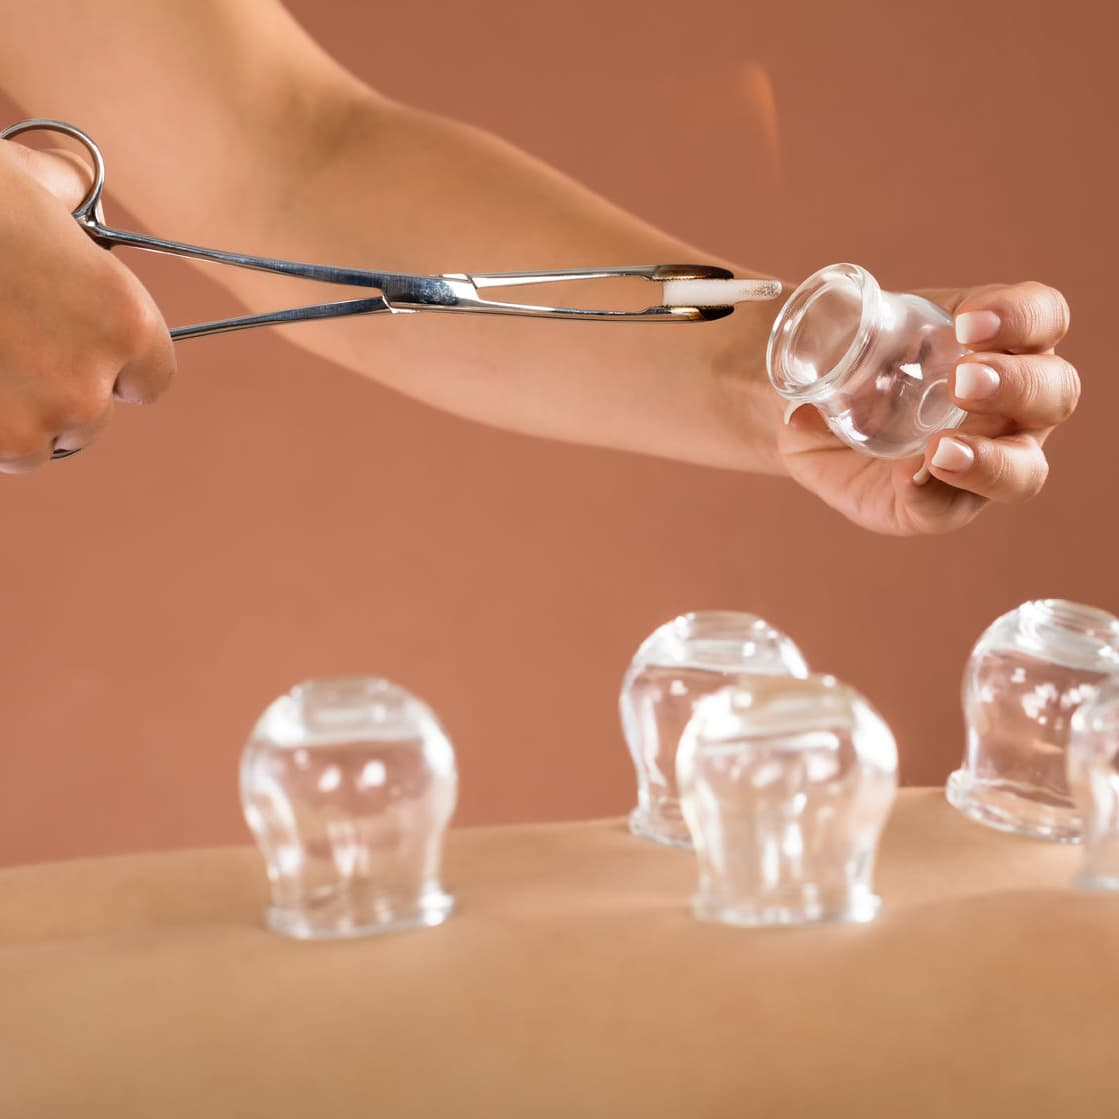 At Home Cupping Therapy: Cupping Therapy: Before It Was Cool